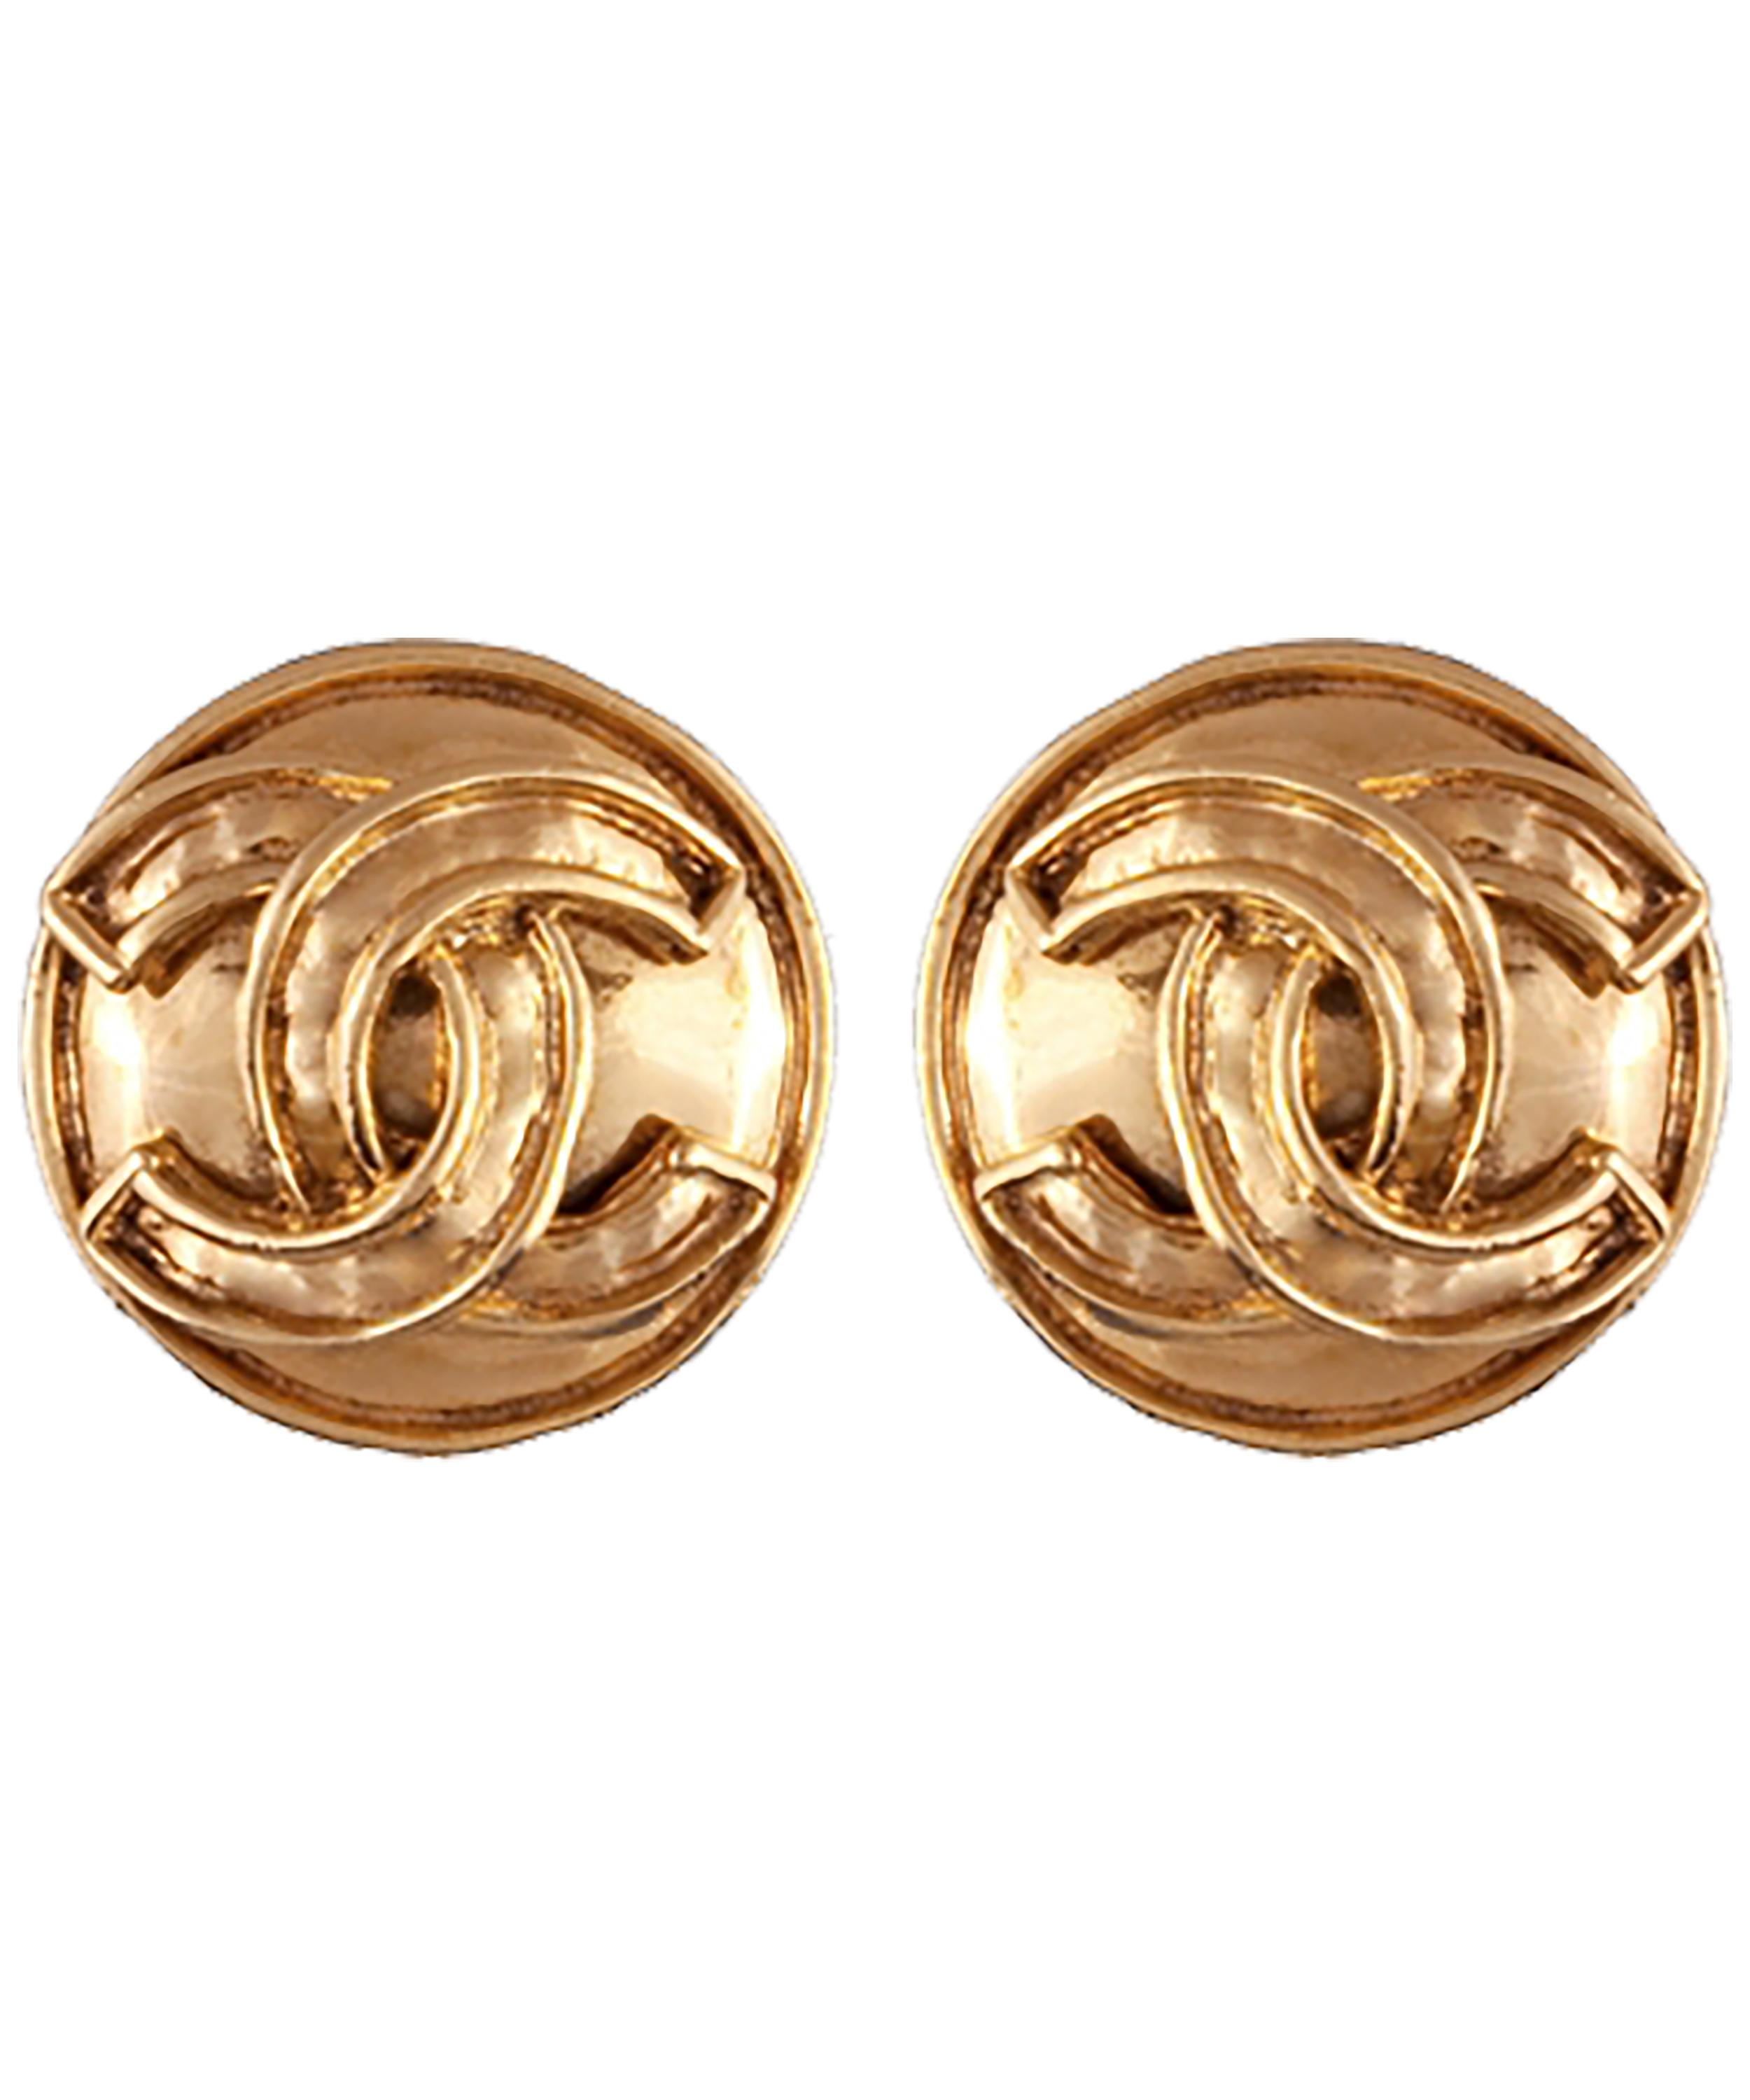 d37d19ada8927 Gold-Tone Chanel Logo Round Clip-On Earrings